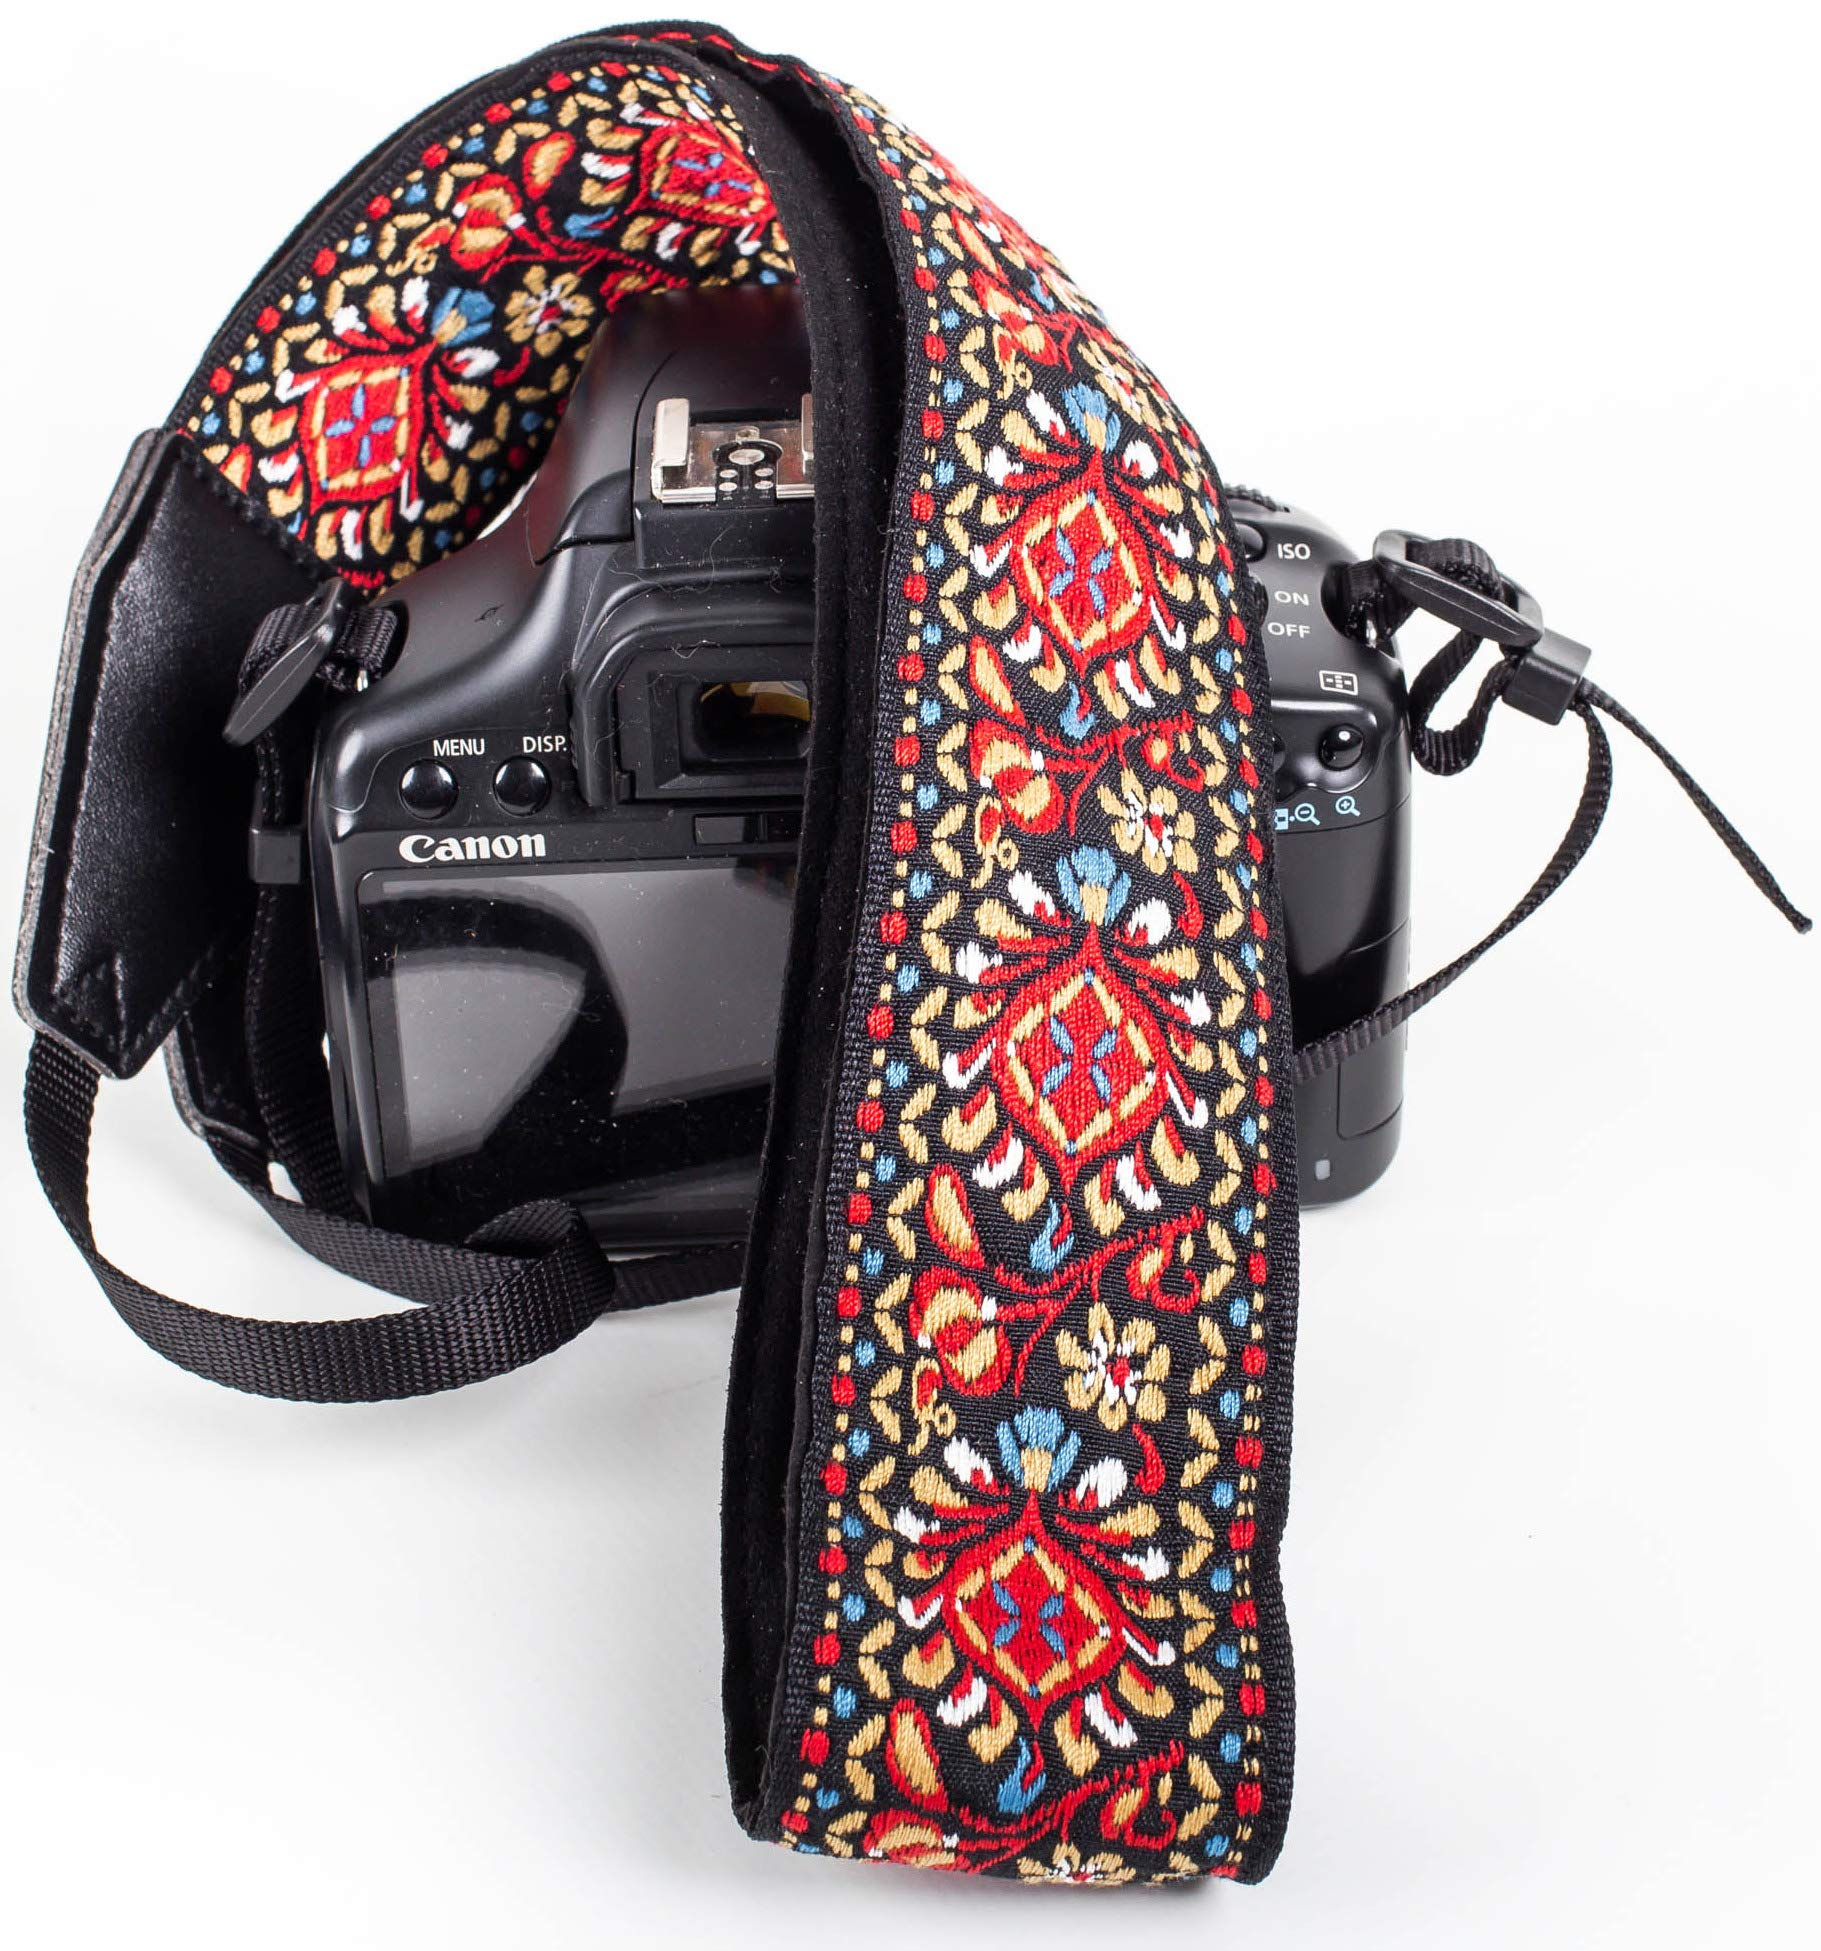 Red Vintage Camera Shoulder Strap Belt for All DSLR Camera - Vibrant Design Universal DSLR Strap, Embroidered Vintage Multi Color Neck Belt for Canon, Nikon, Sony,Pentax, Fujifilm, and Digital Camera by Art Tribute